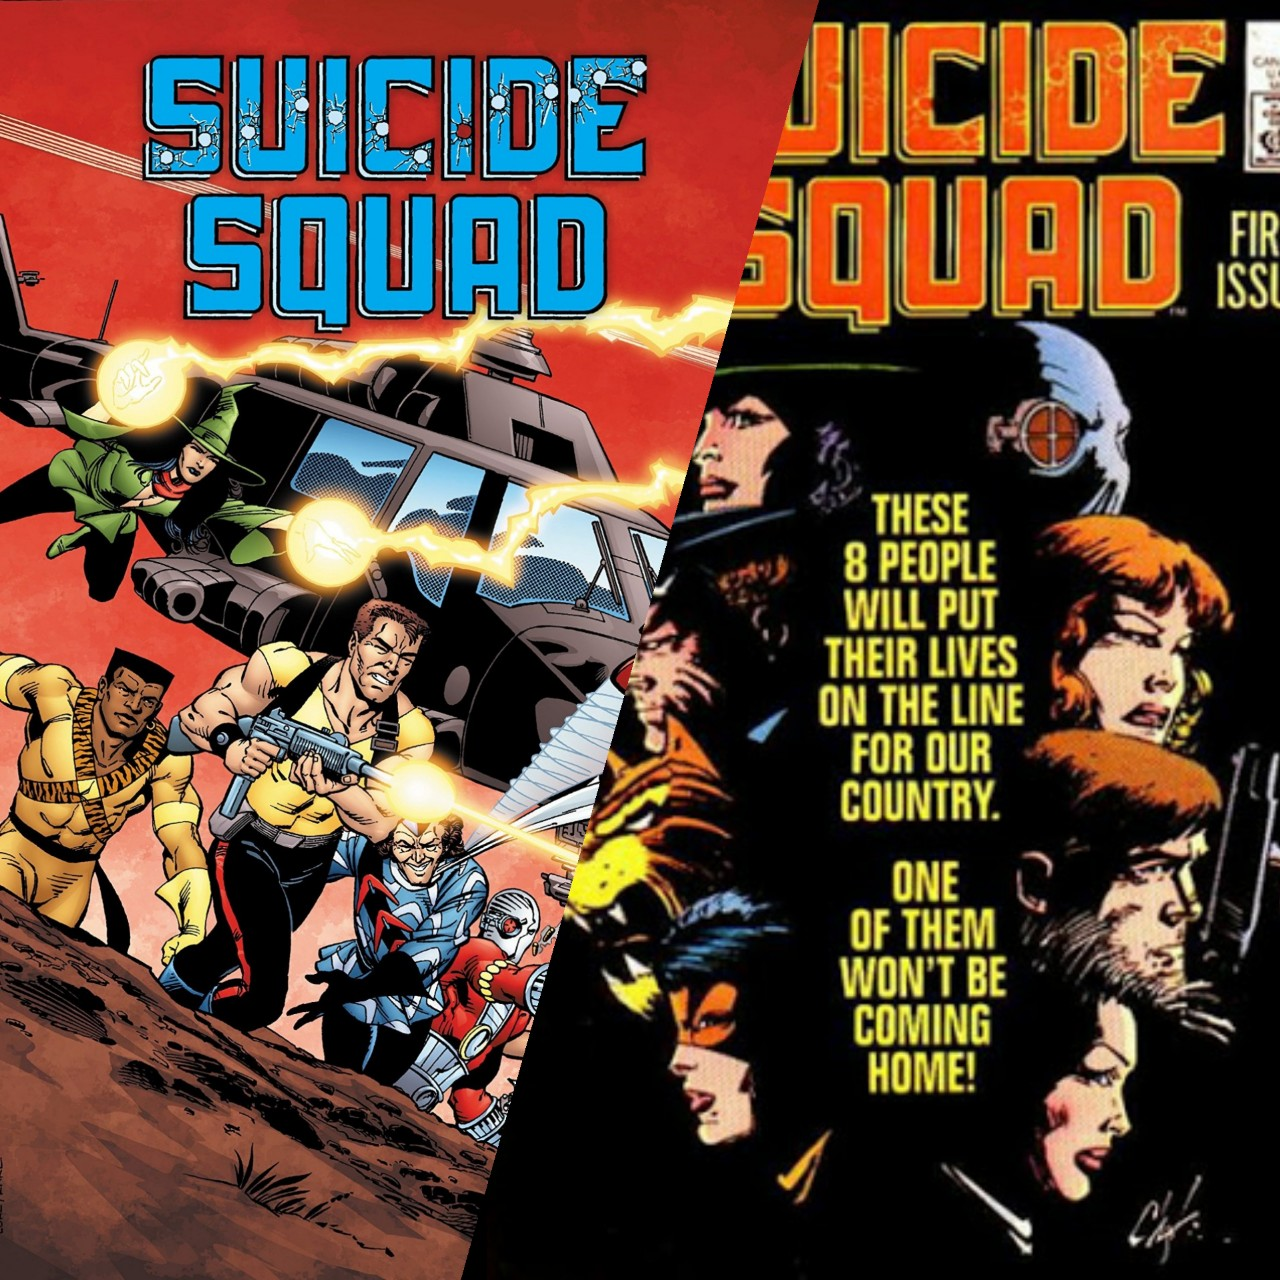 Suicide Squad 2 would follow the original John Ostrander and Kim Yale run of 1980s Suicide Squad comic